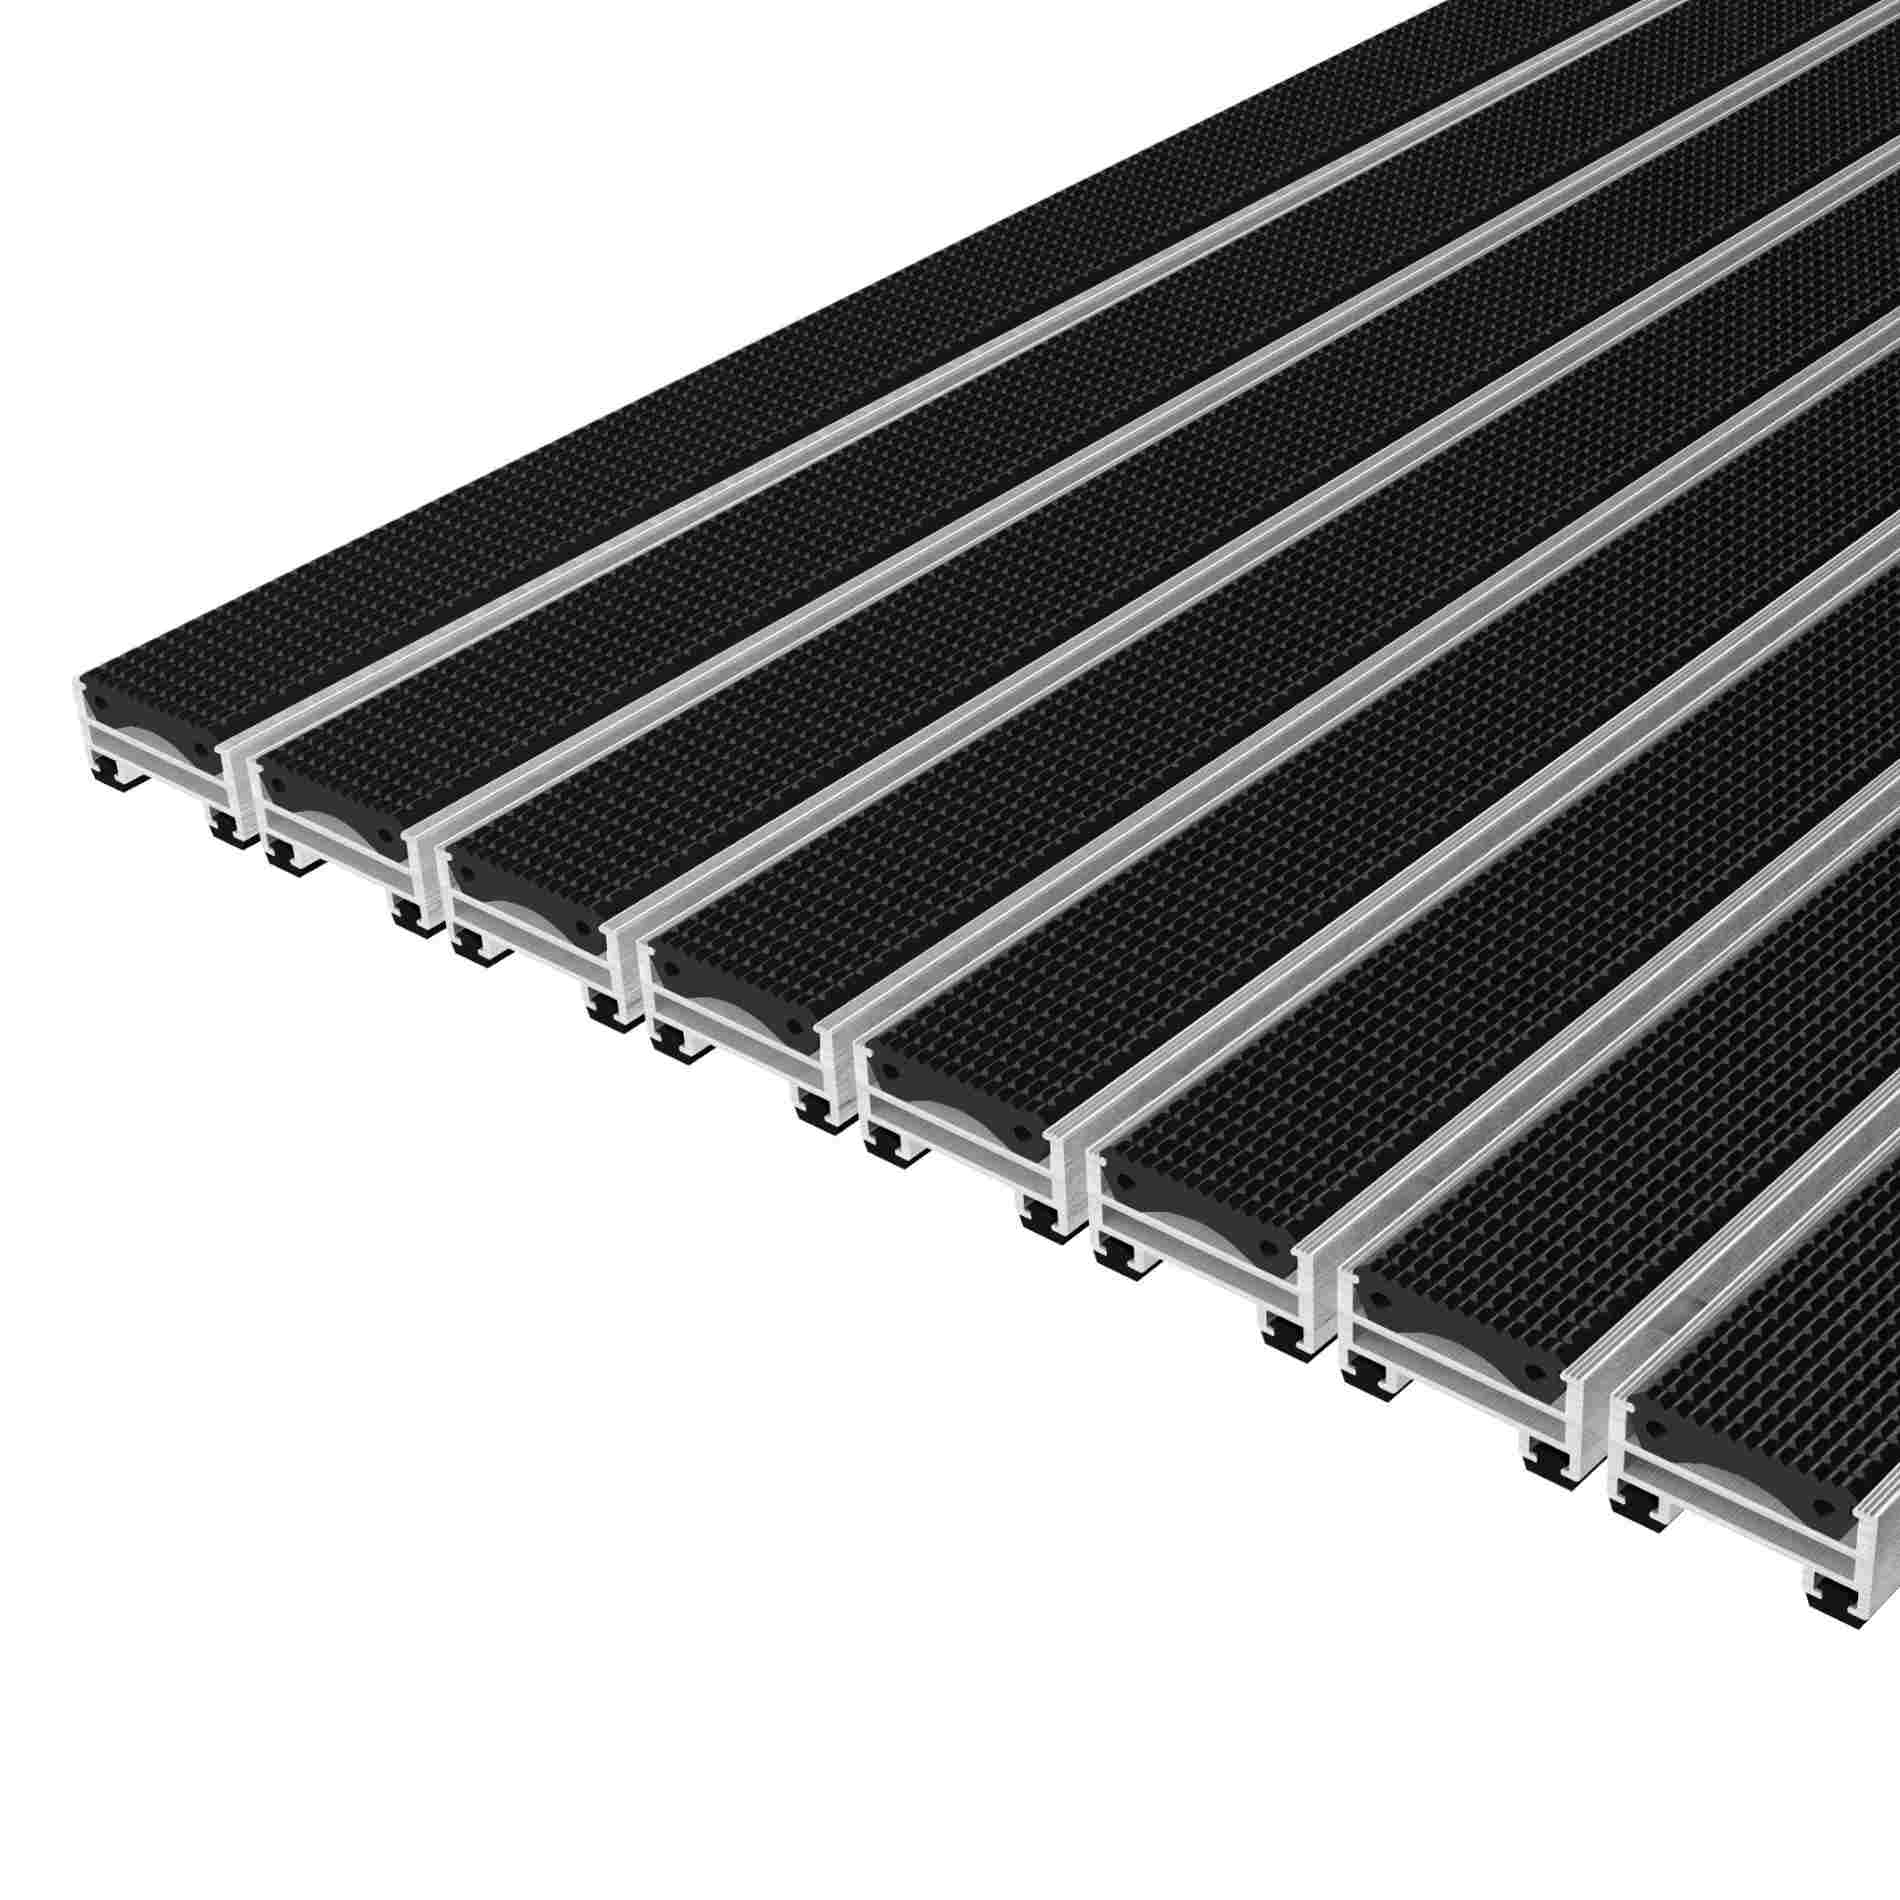 Top Clean STABIL XL with Grooved Rubber